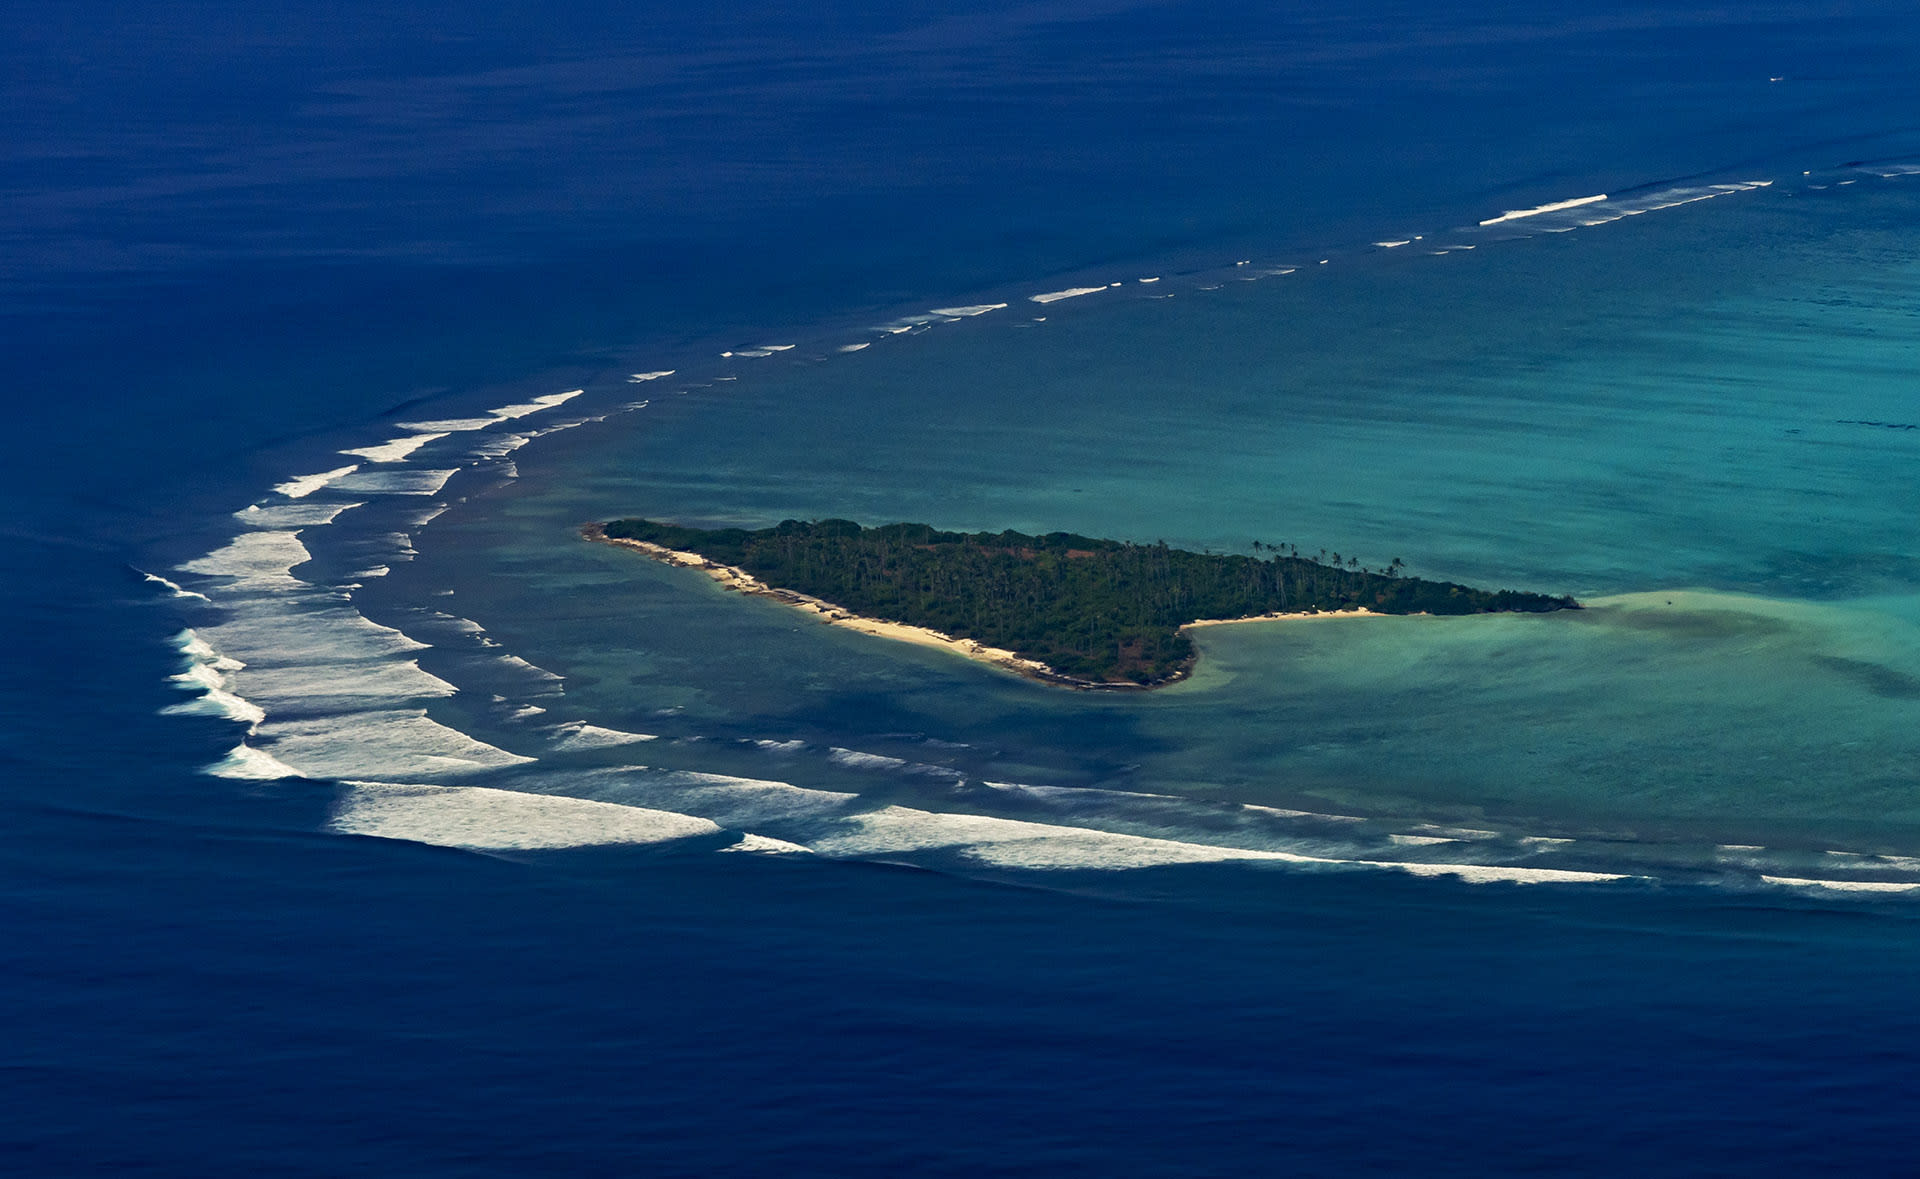 What we see today is the final stage in the geological evolution of a coral reef. The Lakshadweep archipelago faces the brunt of the southwest monsoon; thus, most islands occur on the eastern sides of their lagoons. Kalpitti island in the Agatti lagoon is the first breathtaking site you see when landing into the Agatti aerodrome.